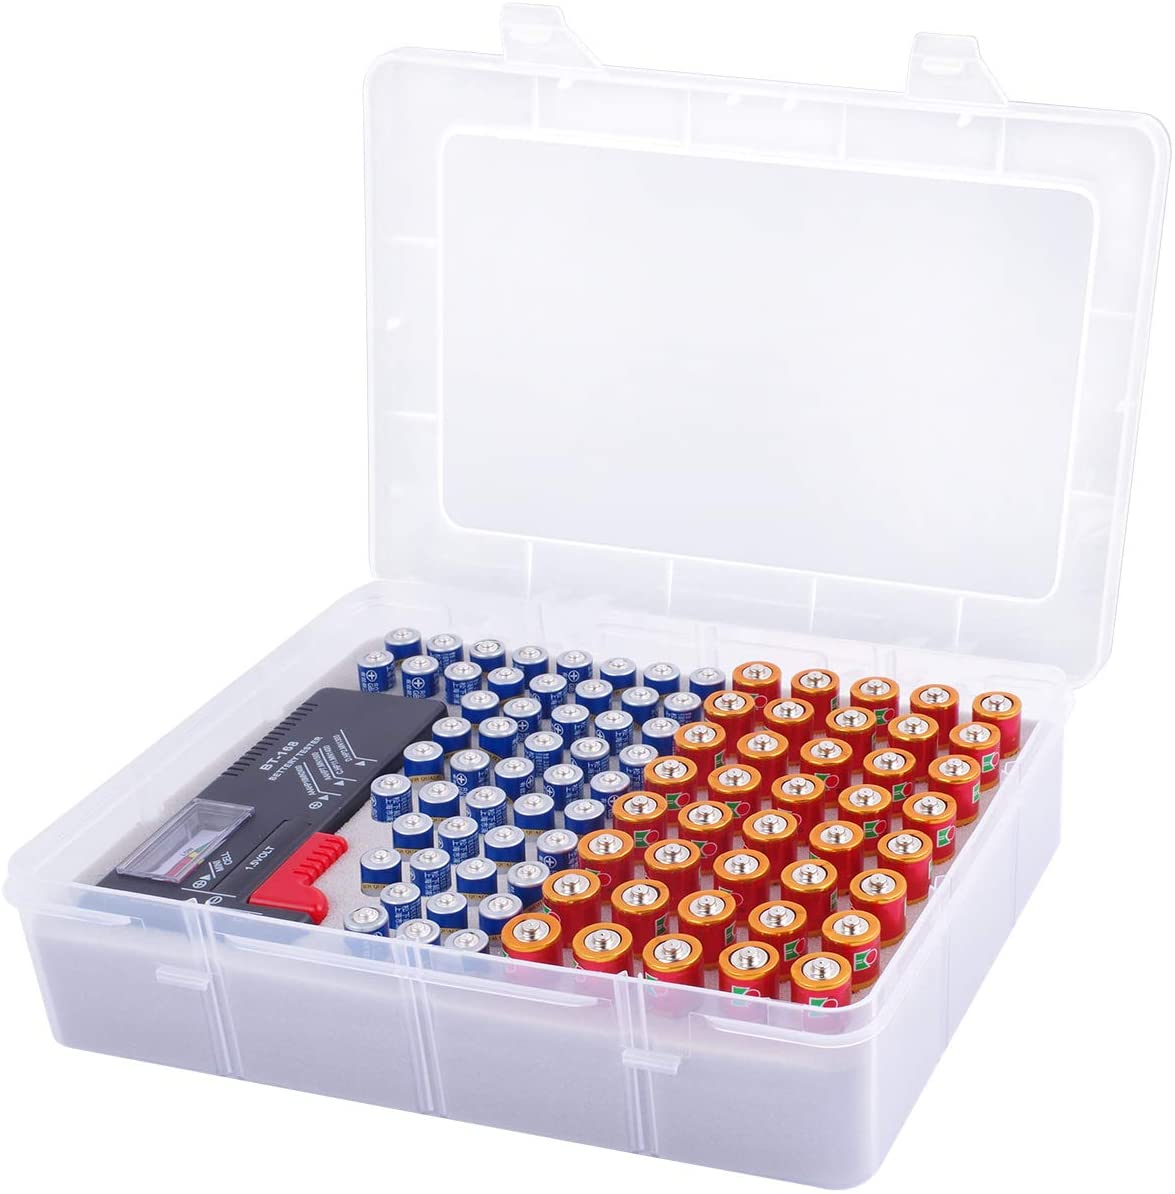 Battery Storage Organizer w/ Battery Tester